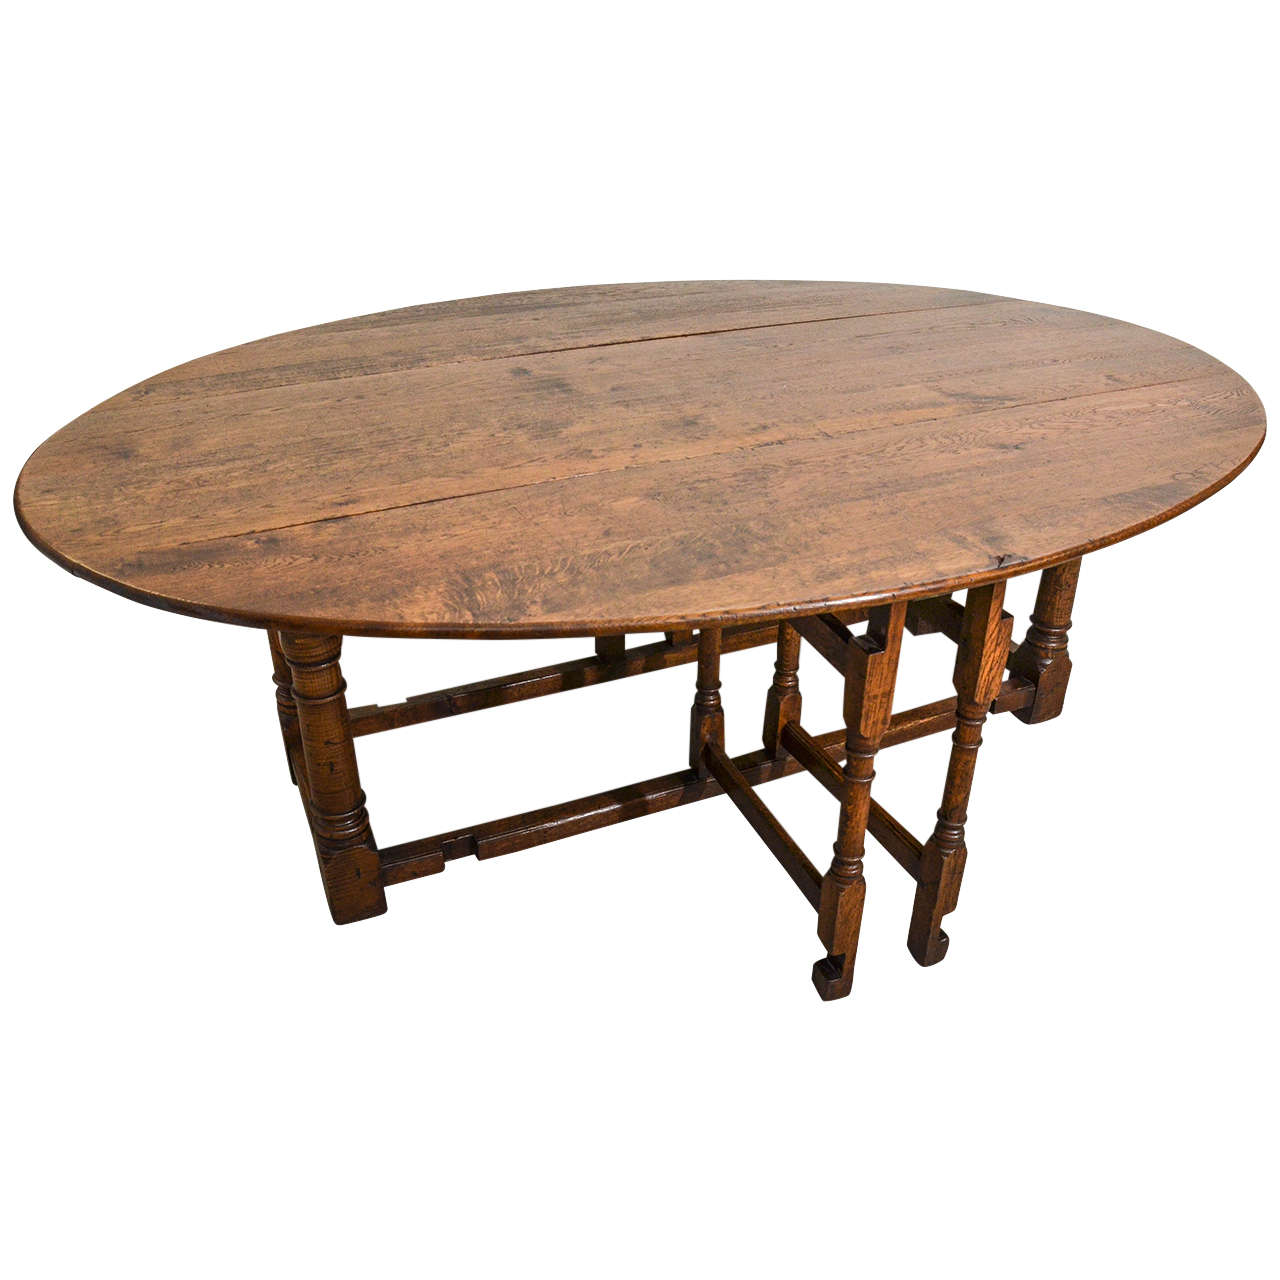 English Oak Gateleg Dining Table at 1stdibs : X from www.1stdibs.com size 1280 x 1280 jpeg 97kB